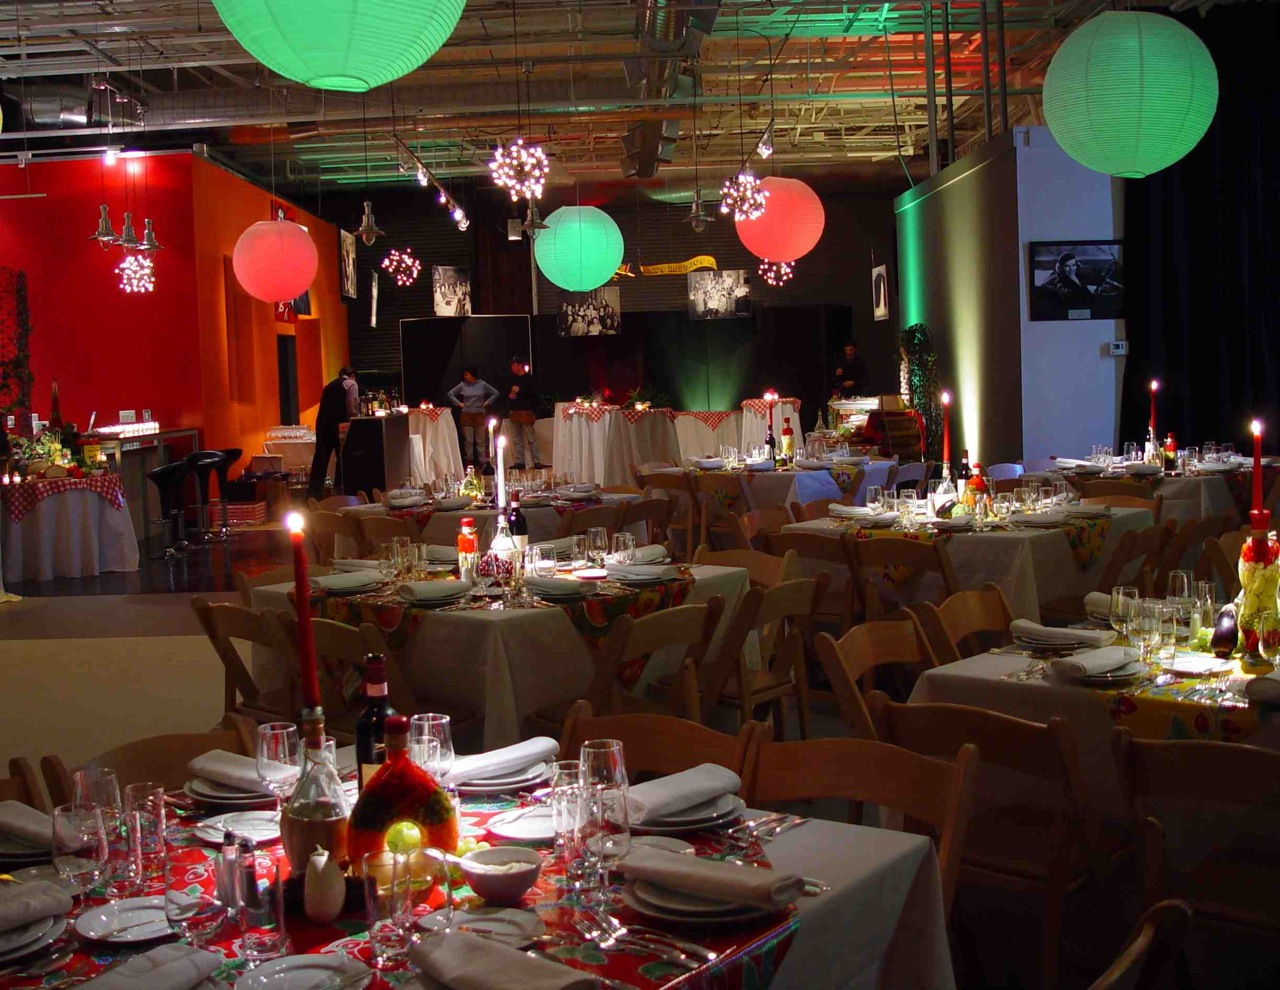 Eggsotic+Events+NJ+NYC+International+Theme+Party+Decorations+and+Lighting+04.jpg